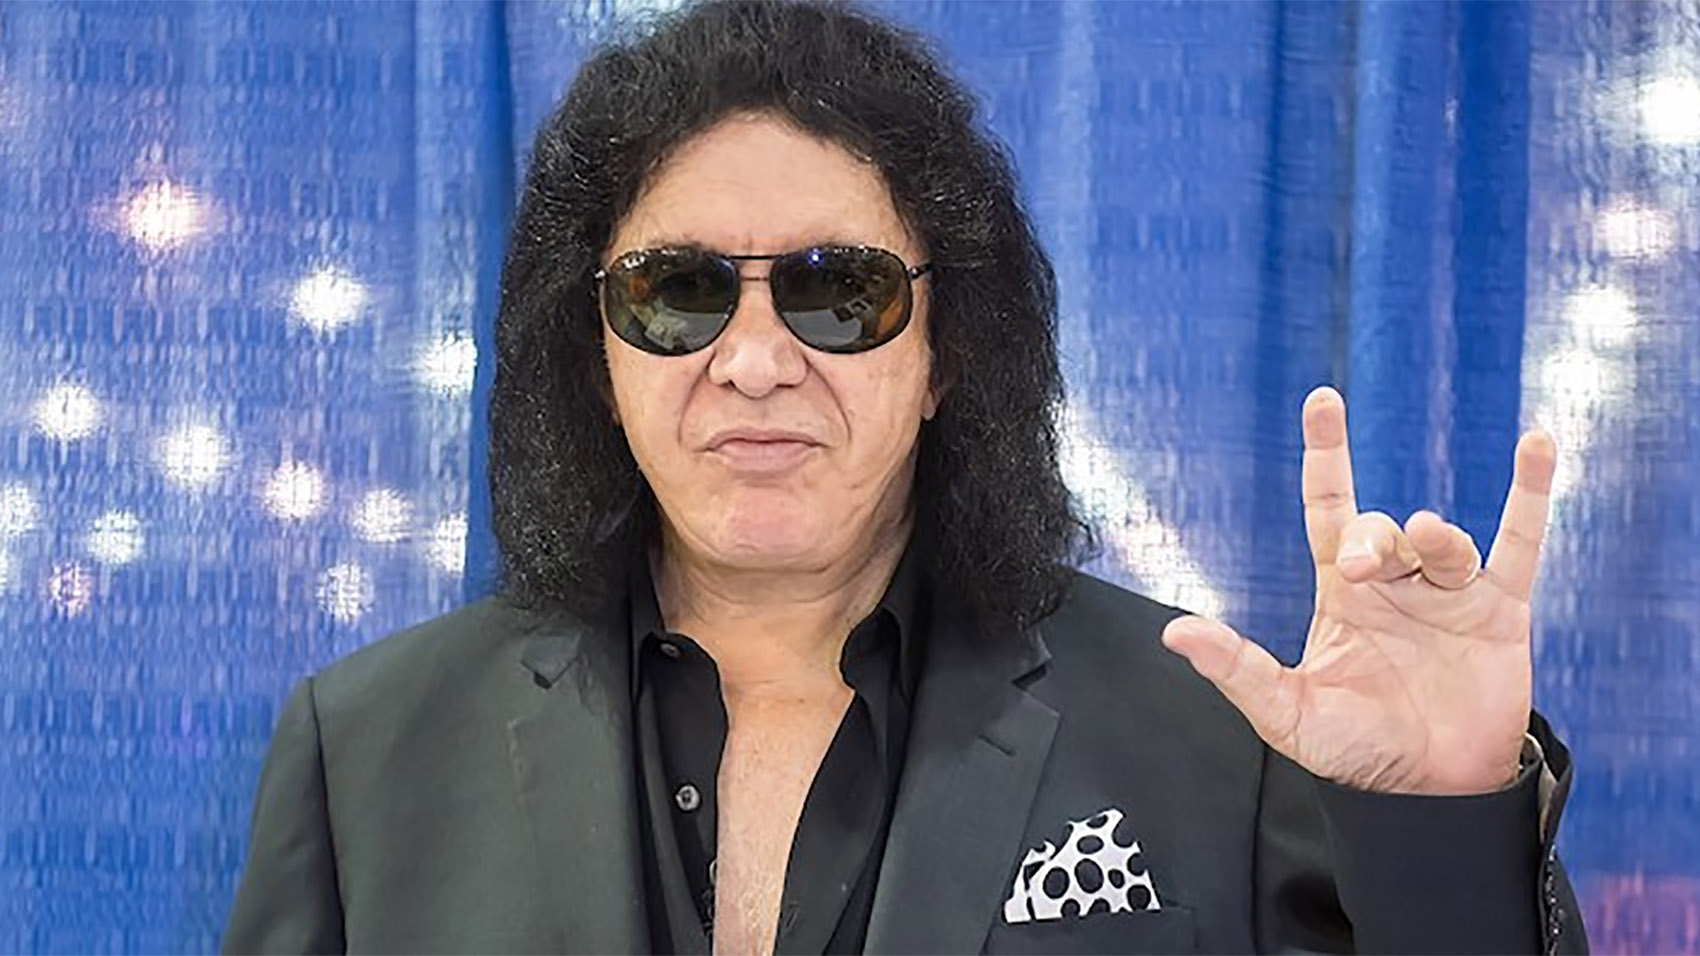 Gene Simmons Is Trying To Trademark A Hand Gesture | Riot Fest